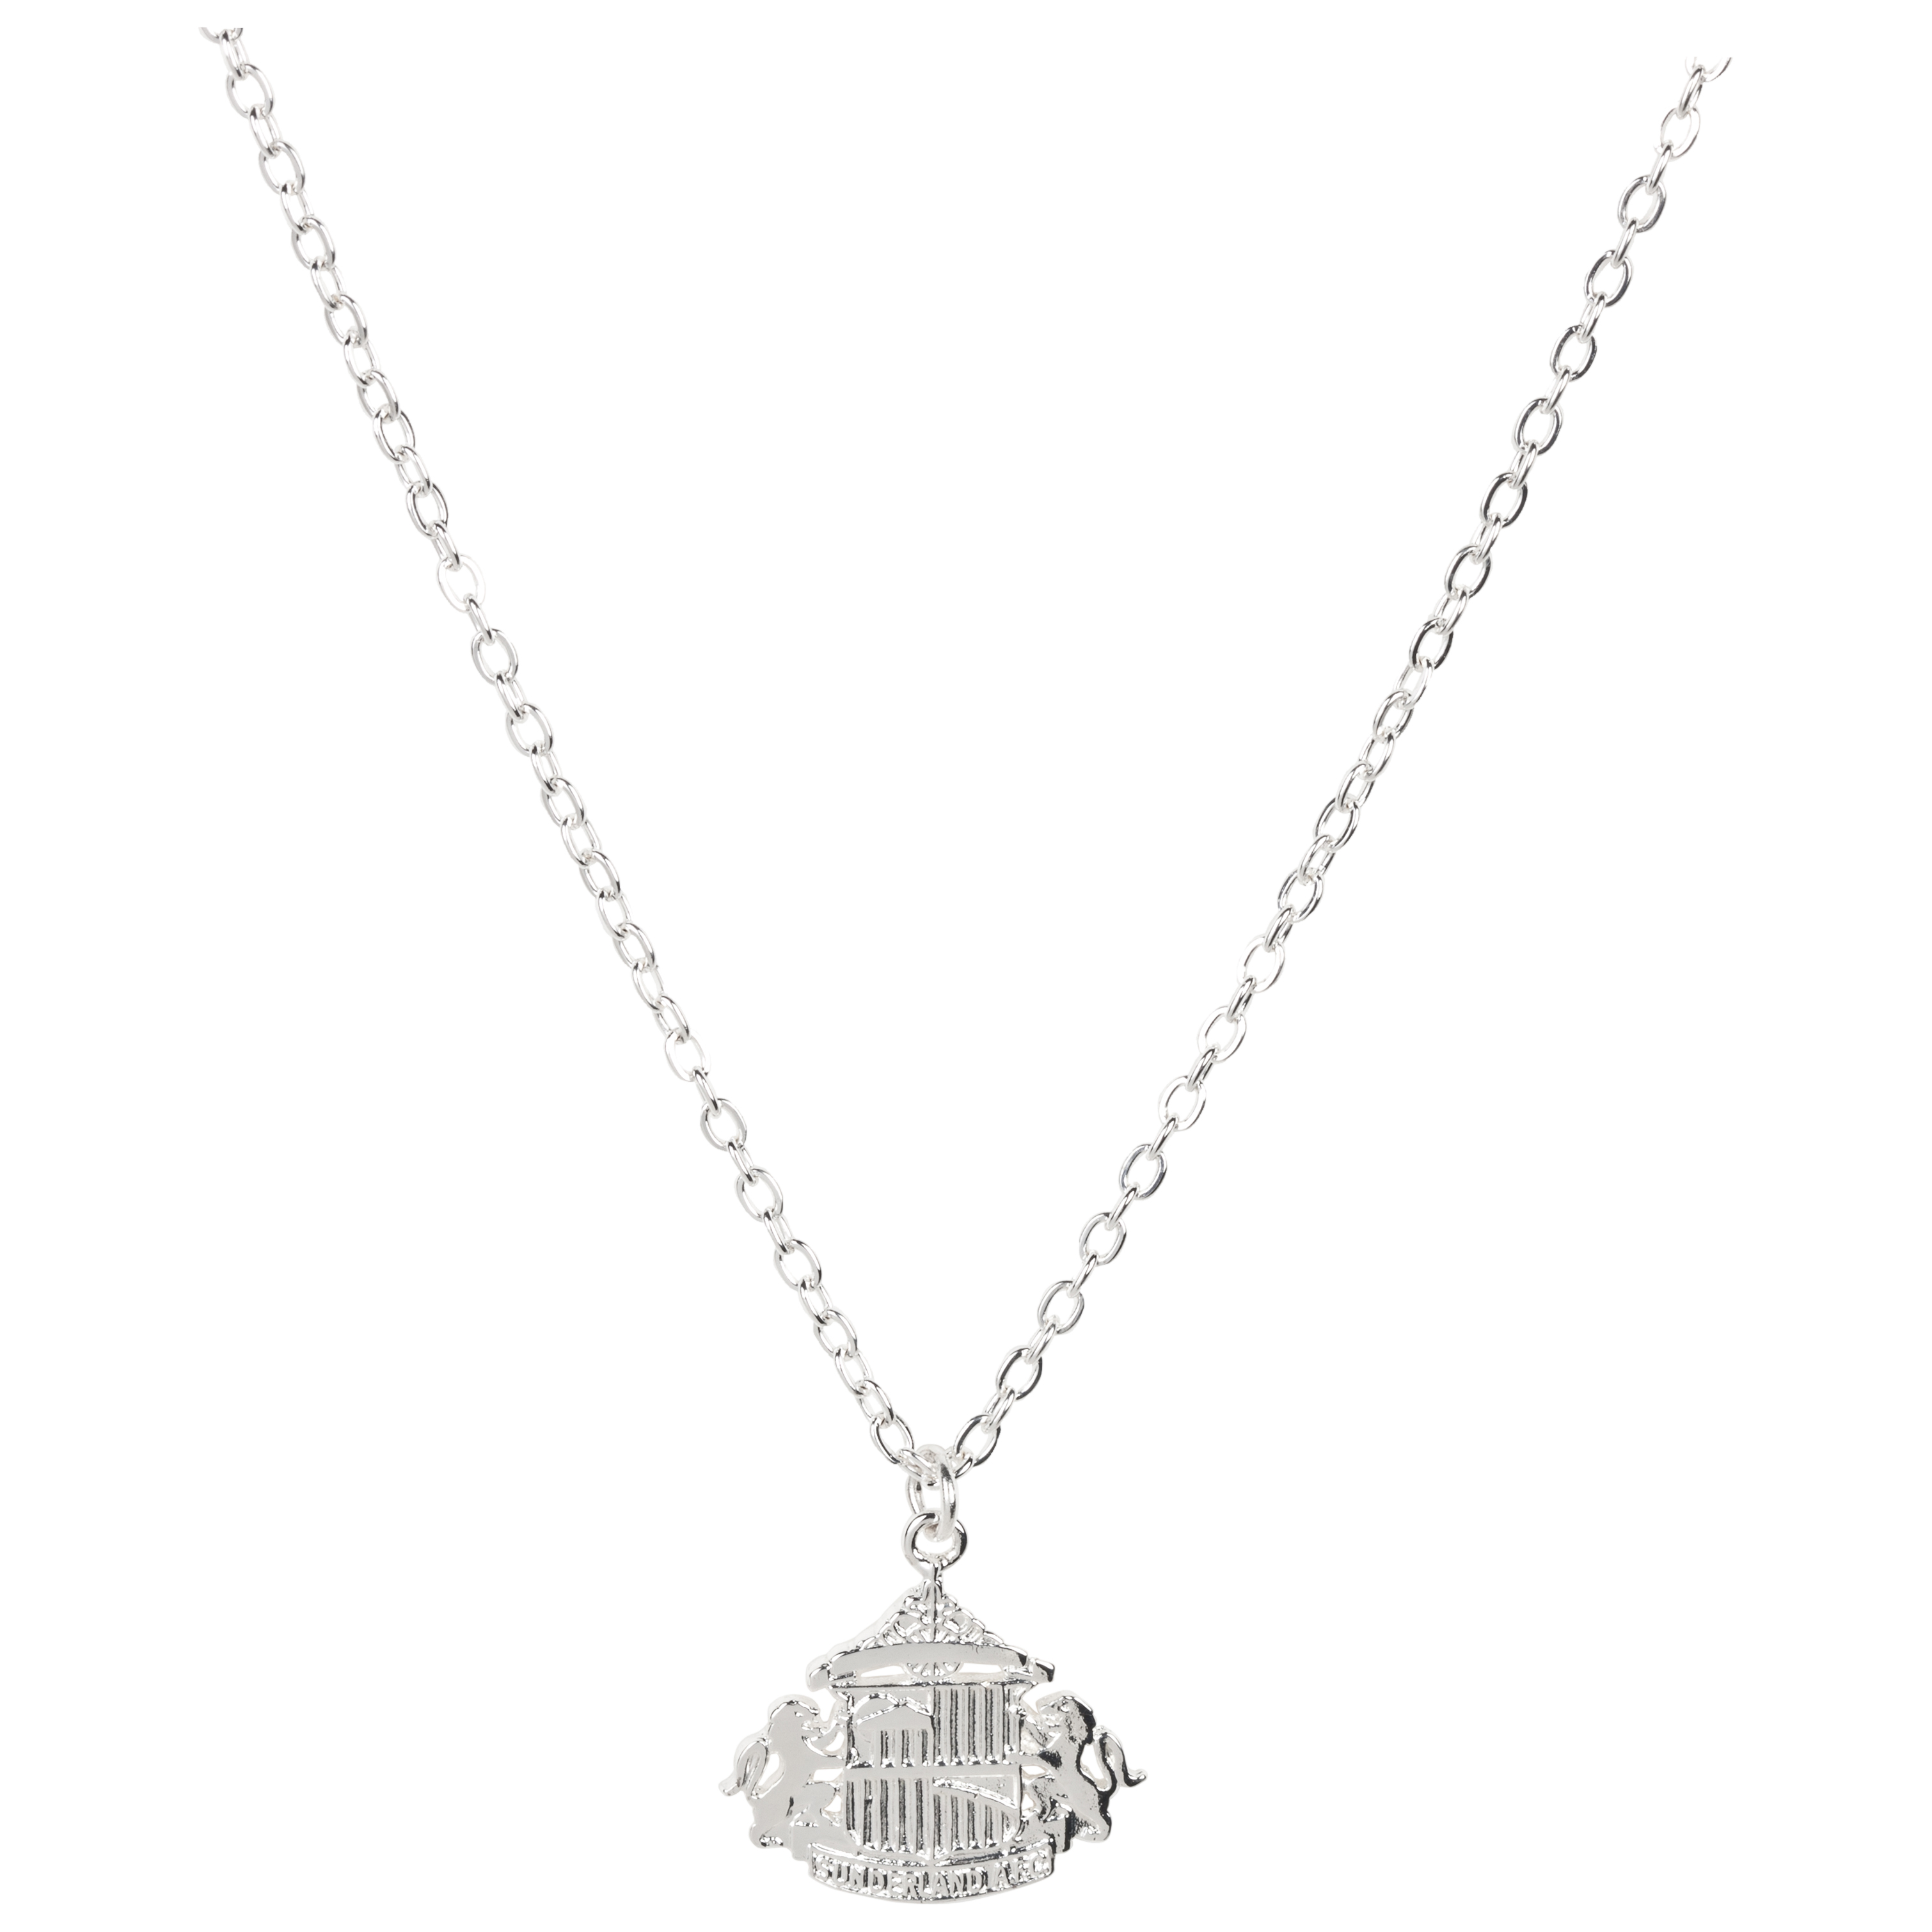 Sunderland Silver Plated Large Pendant and Chain